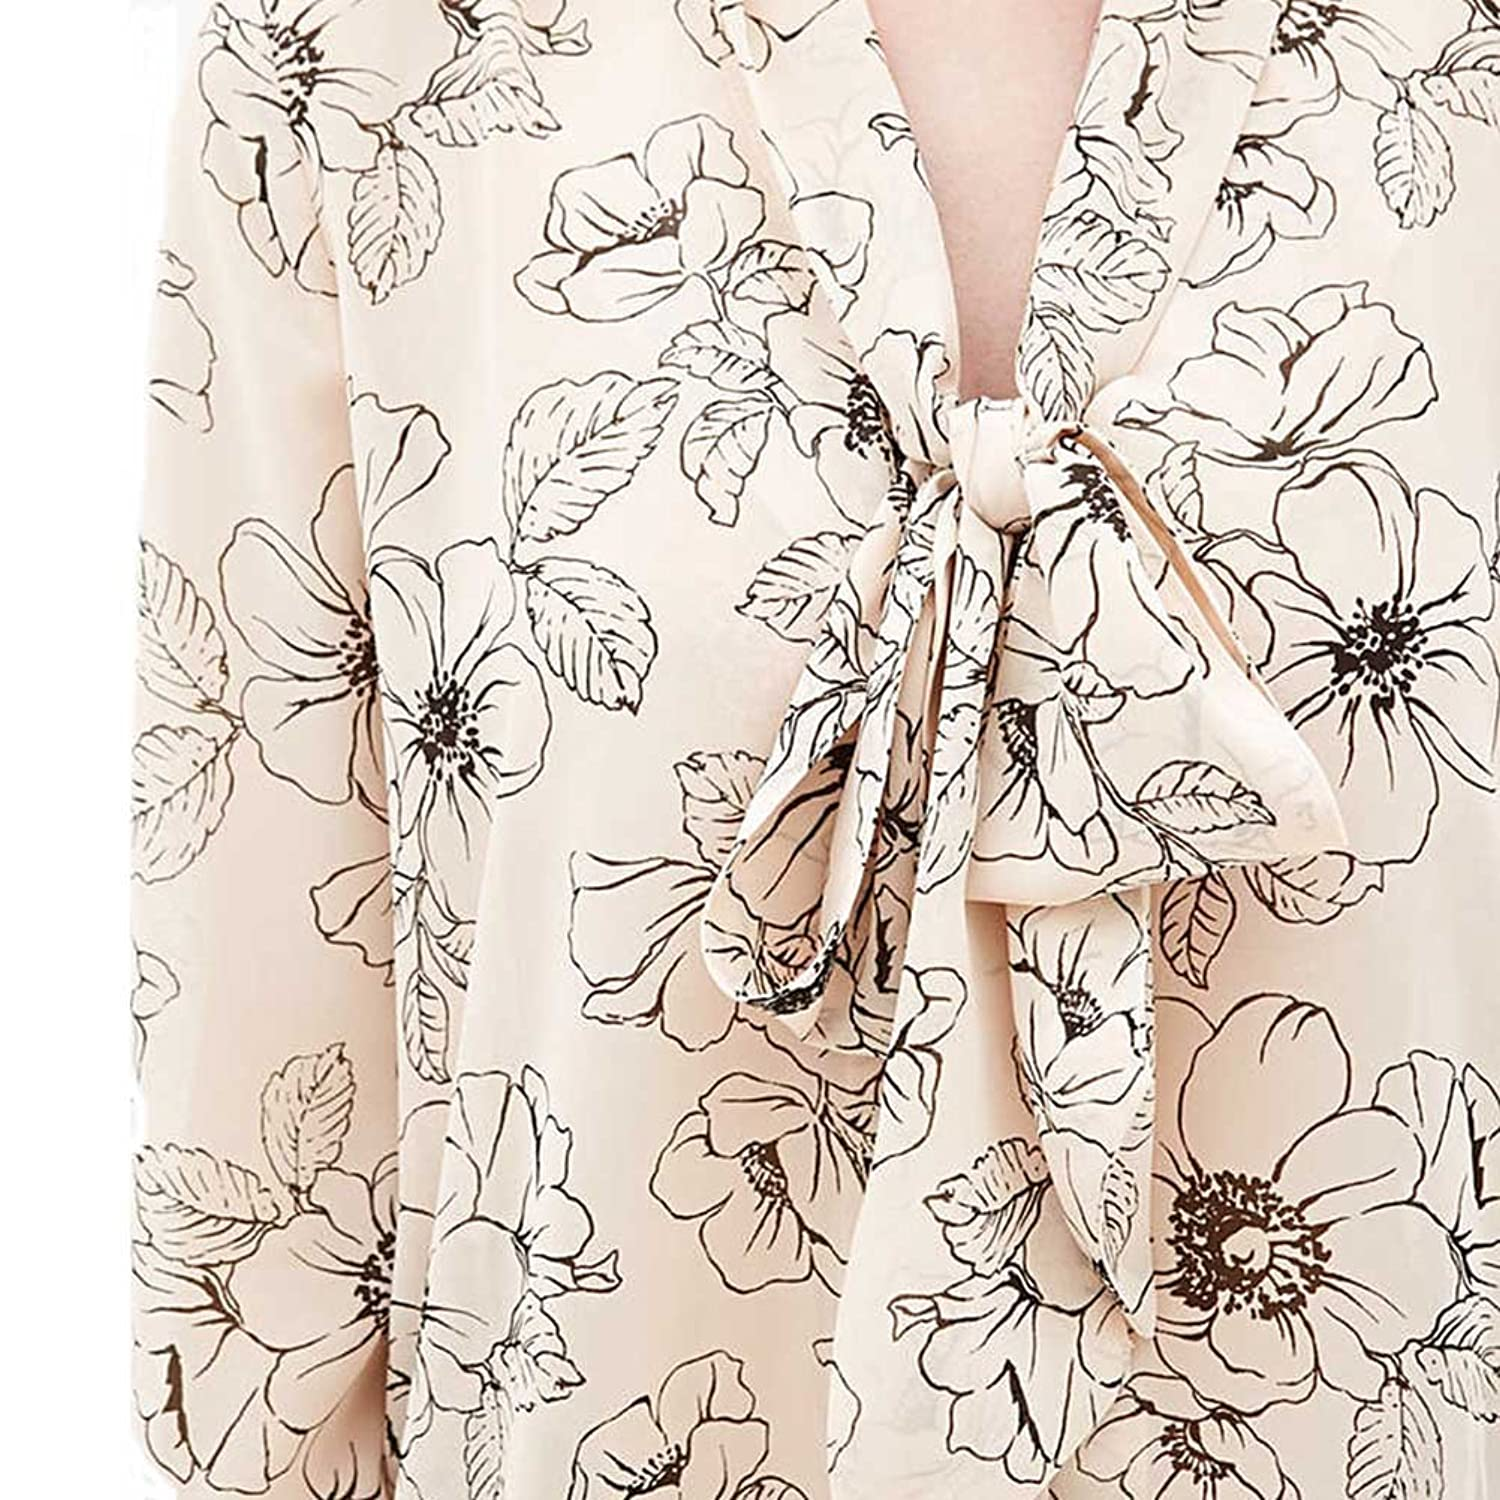 Chfashion Women's Sexy Deep V Neck Bowknot Floral Printed Chifffon Blouse Beige